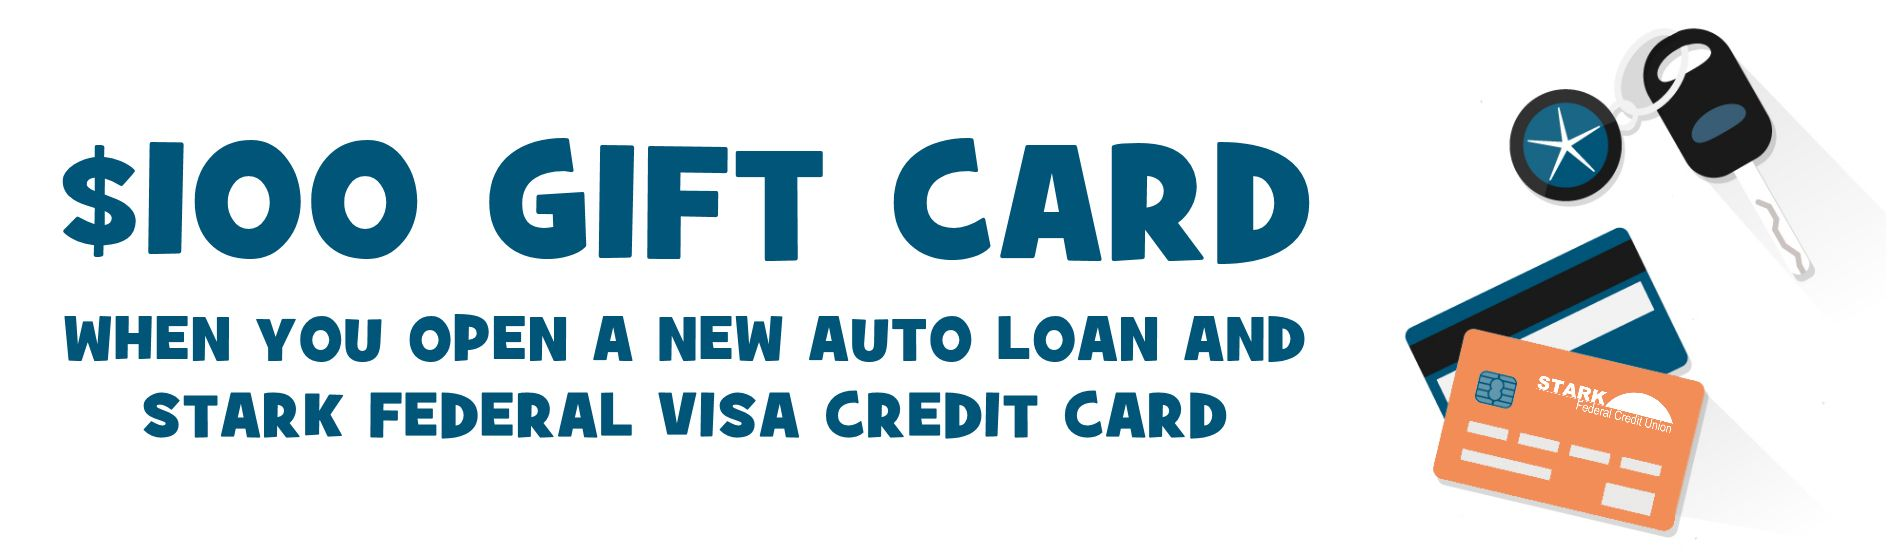 $100 Gift Card when you open a new auto loan and Stark Federal Credit Card